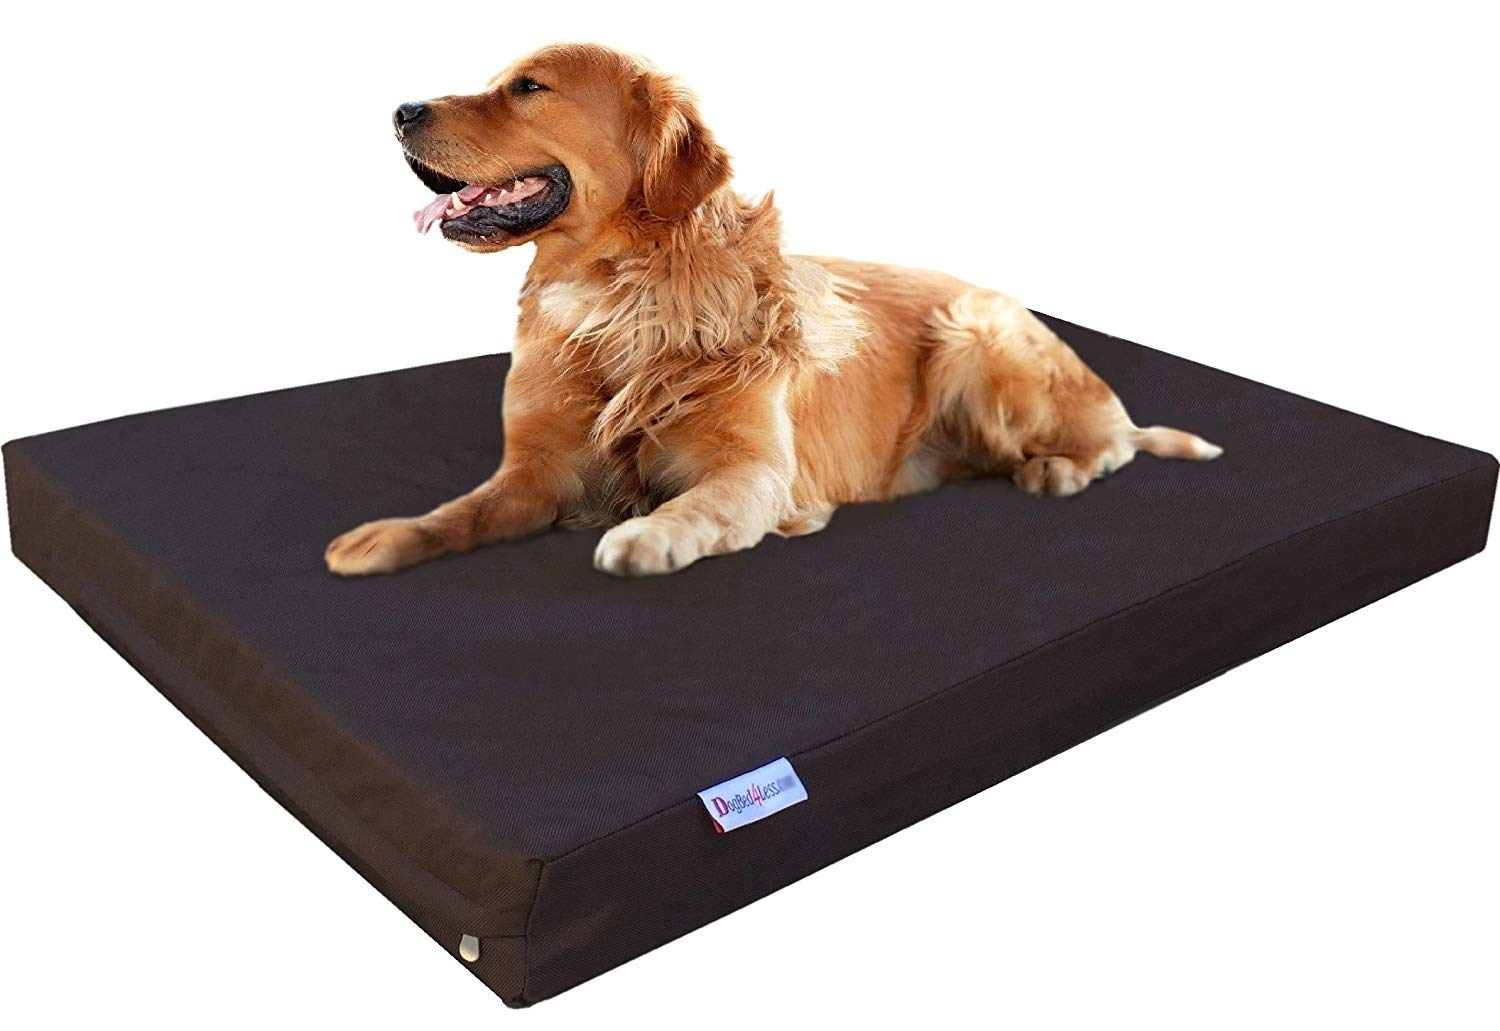 Dogbed4less Heavy Duty Memory Foam Dog Bed